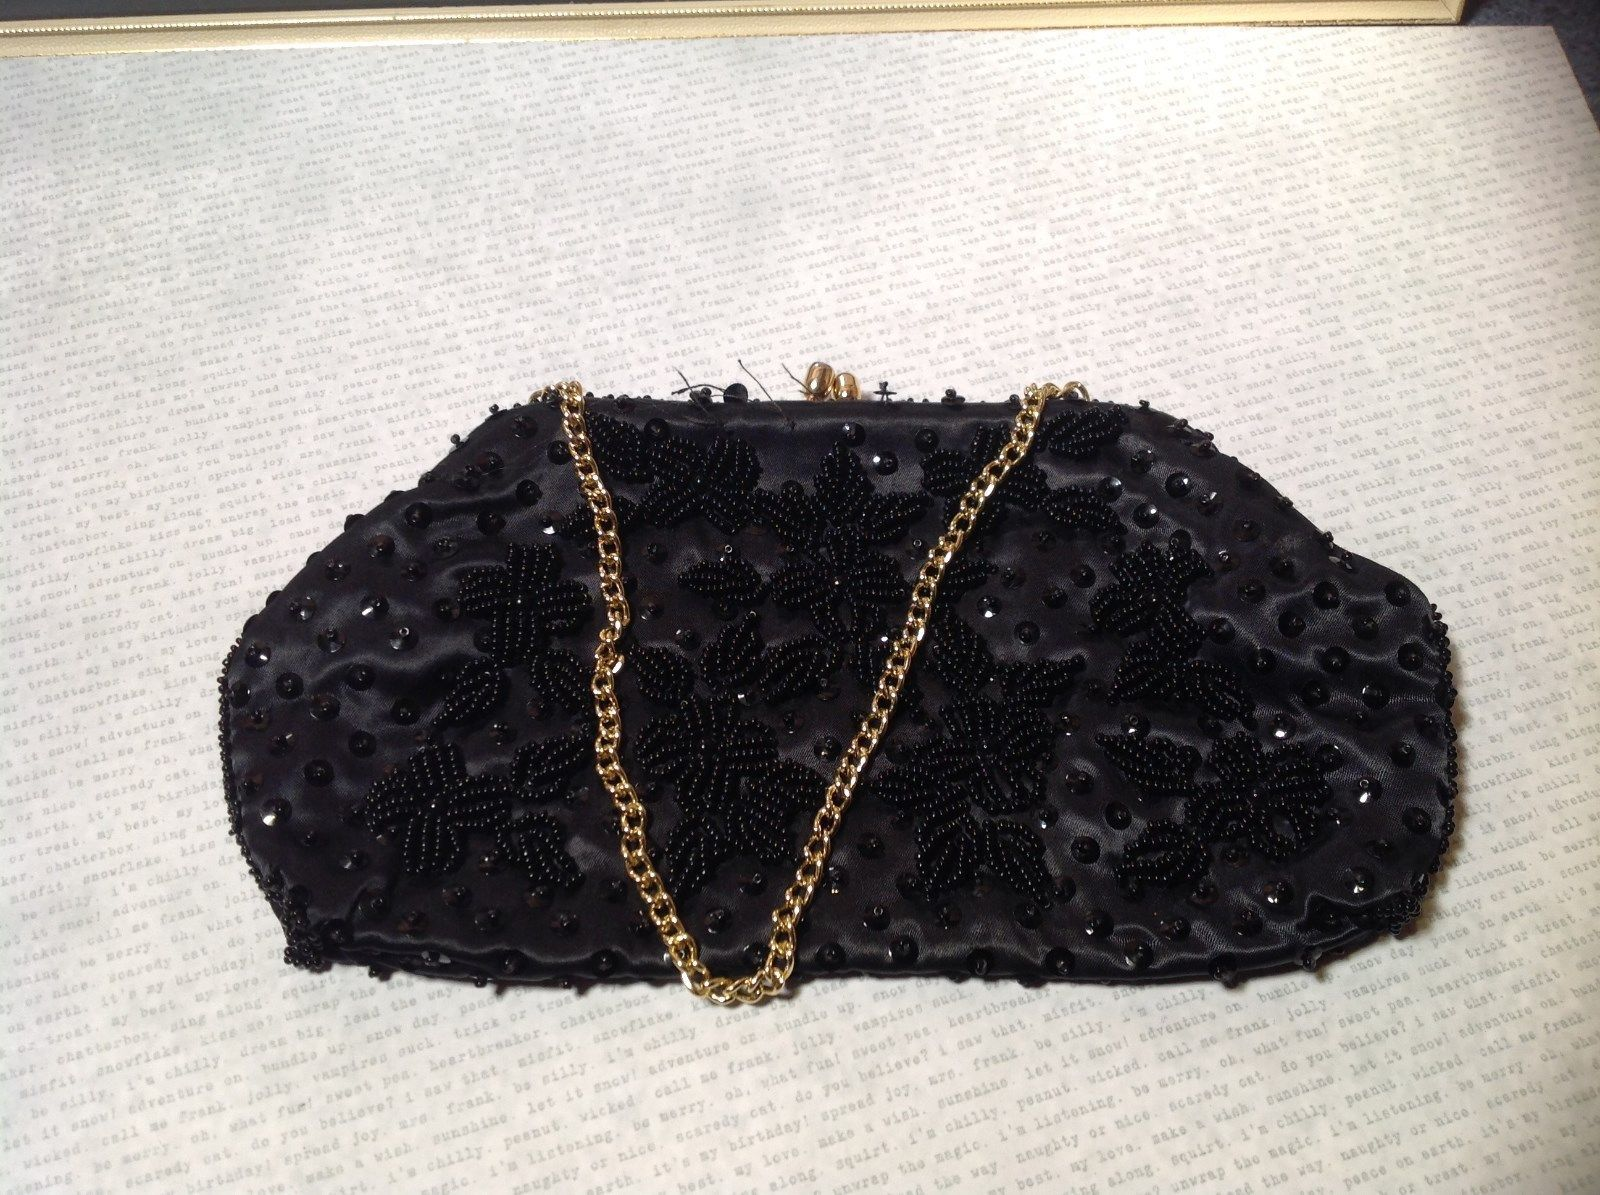 Black Clutch Bag with Beads on Outside Flowers Gold Chain Pocket Section Inside